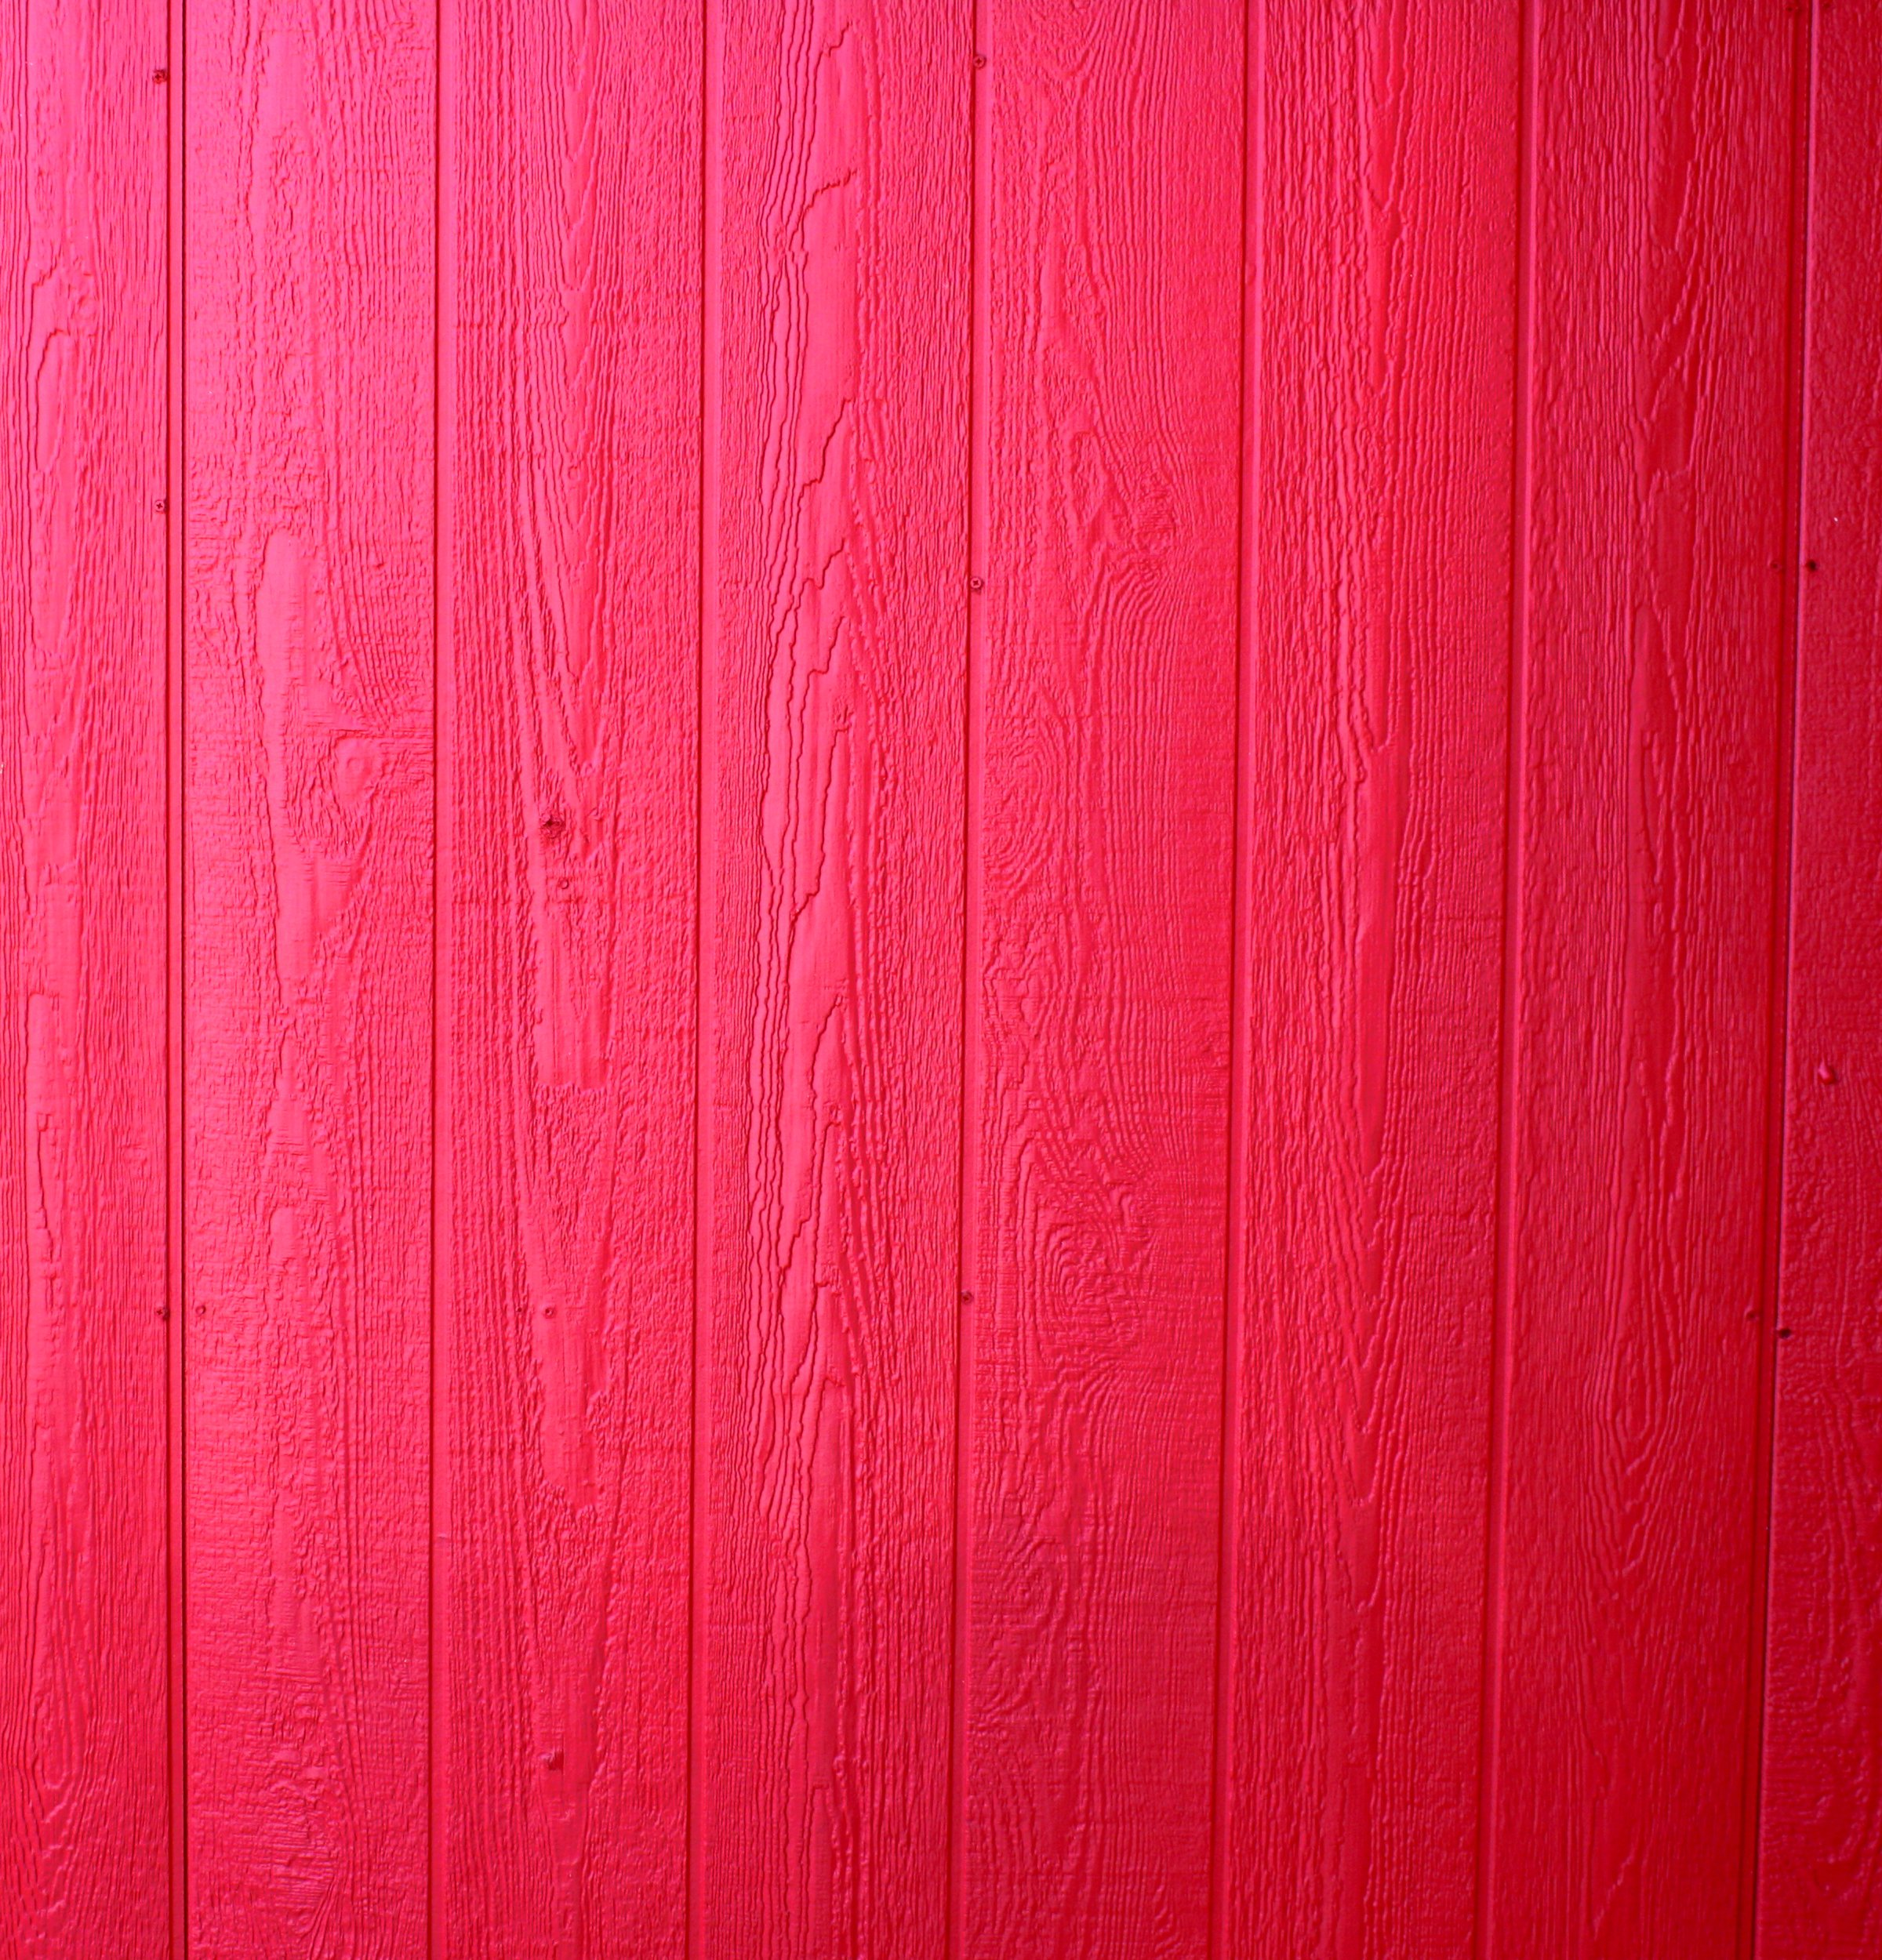 red wall paneling texture picture free photograph